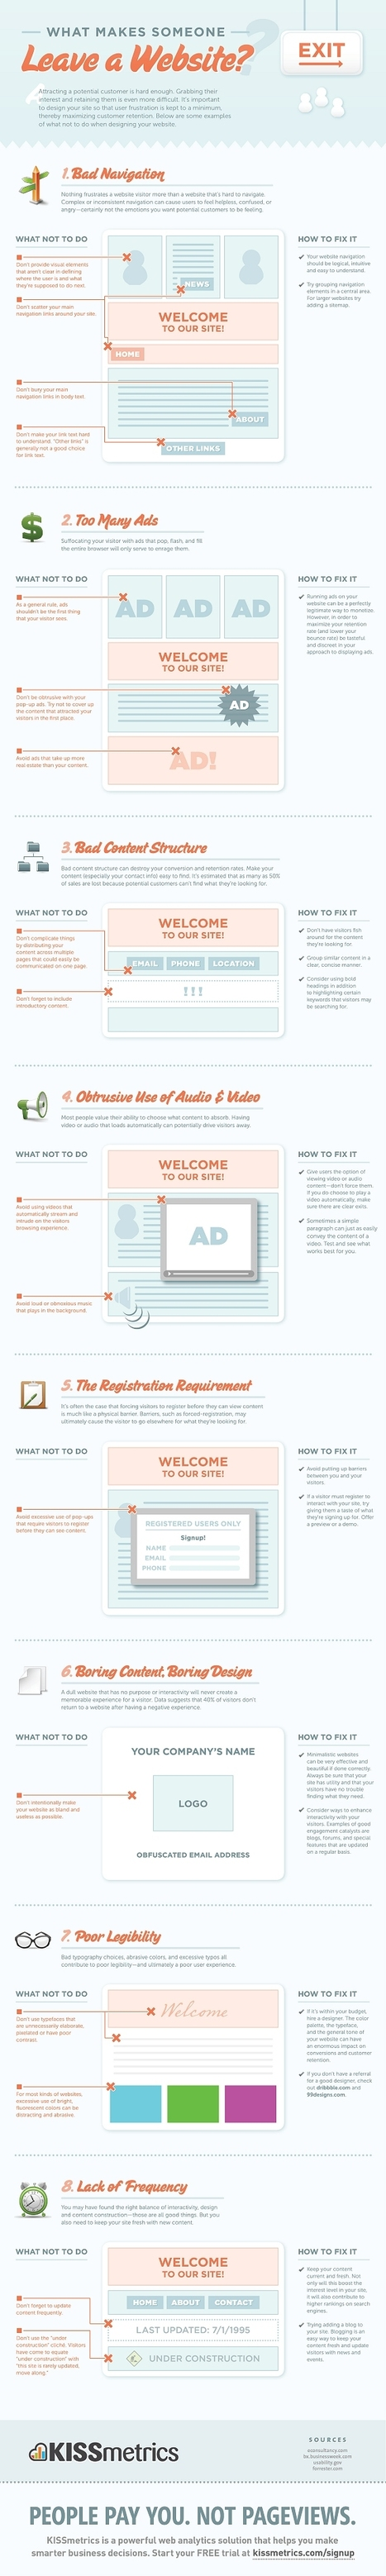 What Makes Someone Leave Your Website? [INFOGRAPHIC] | Wordpress | Web-building | Scoop.it